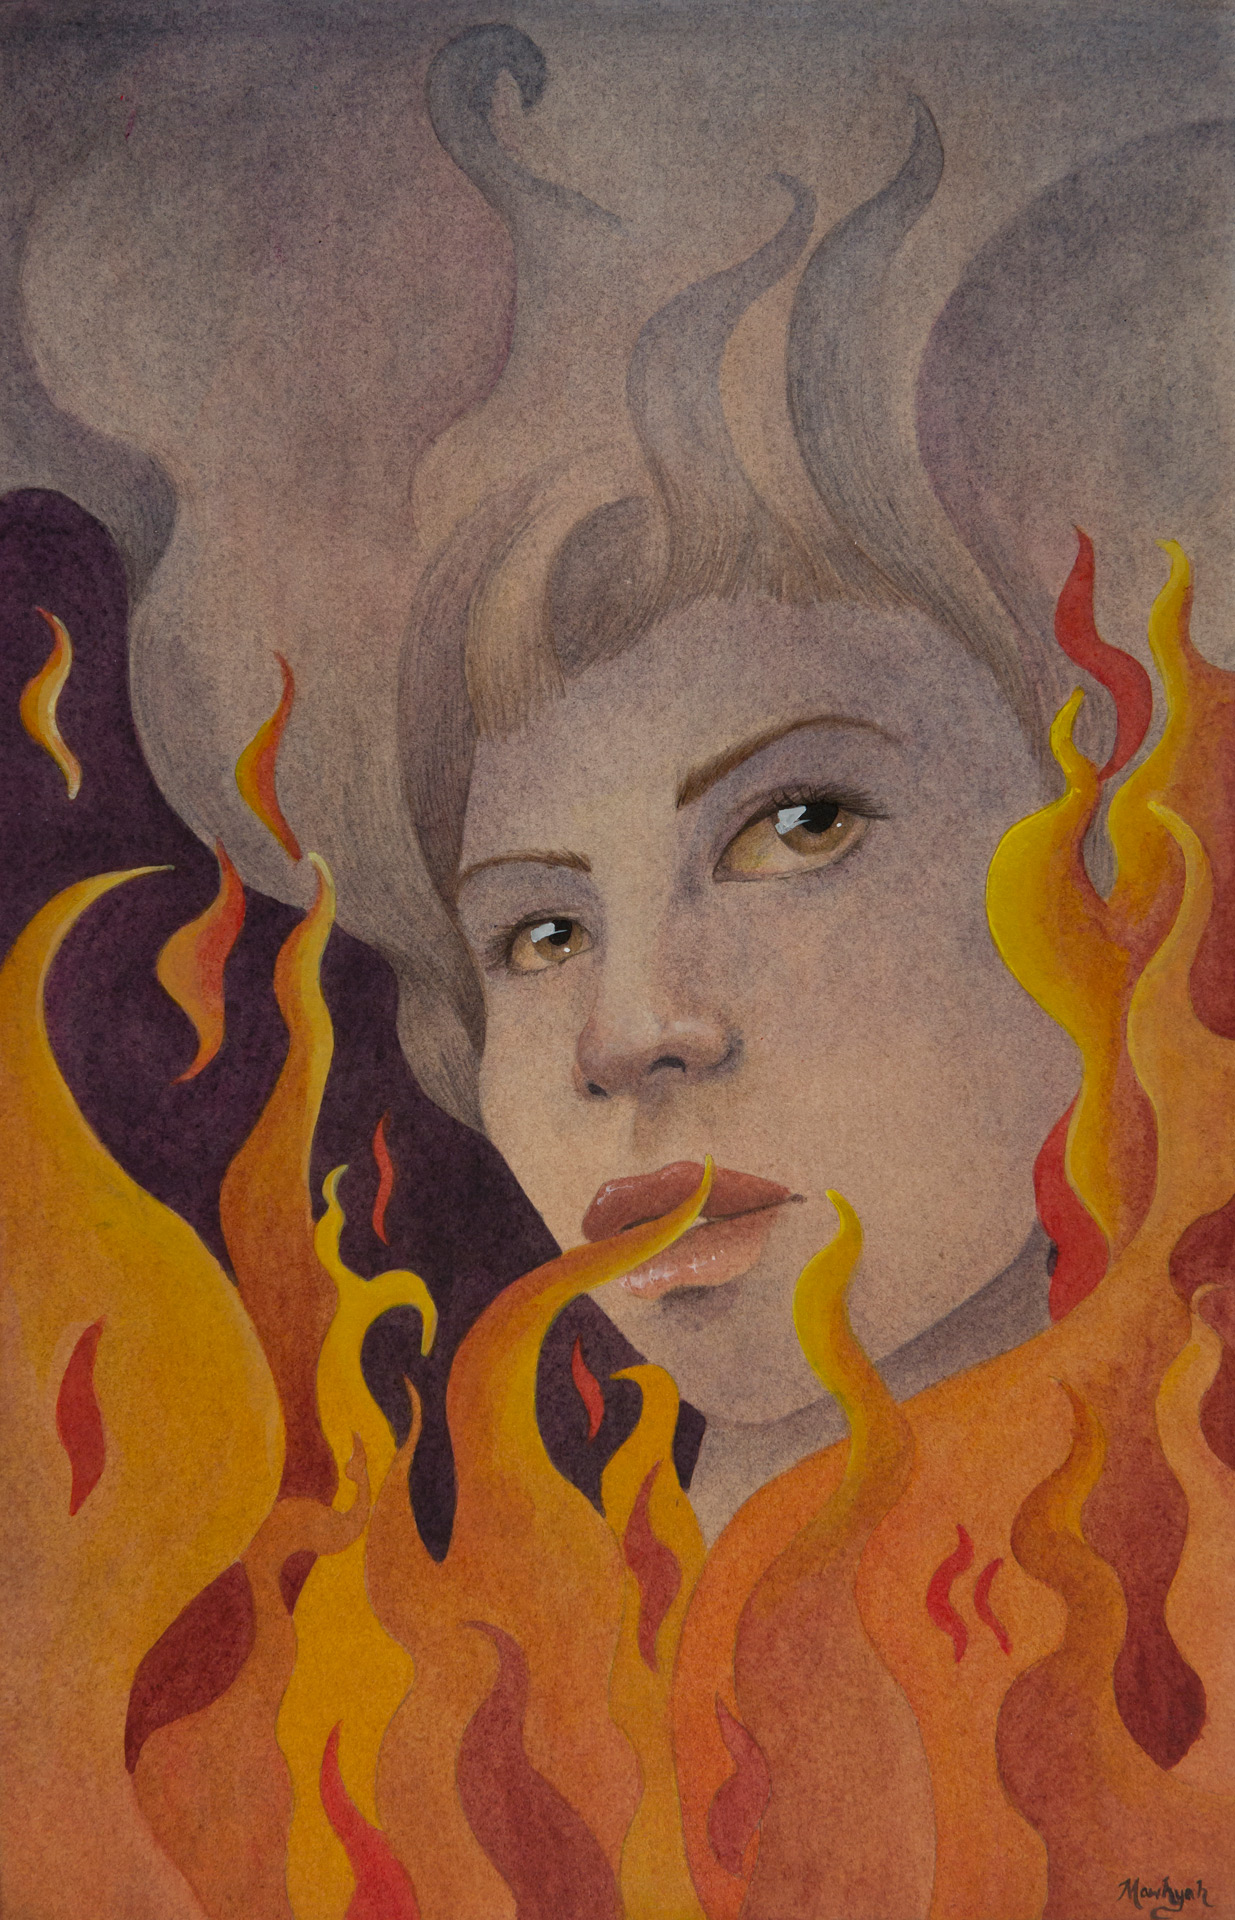 Girl on Fire, Mawhyah Milton, Scholarship Gala 2014